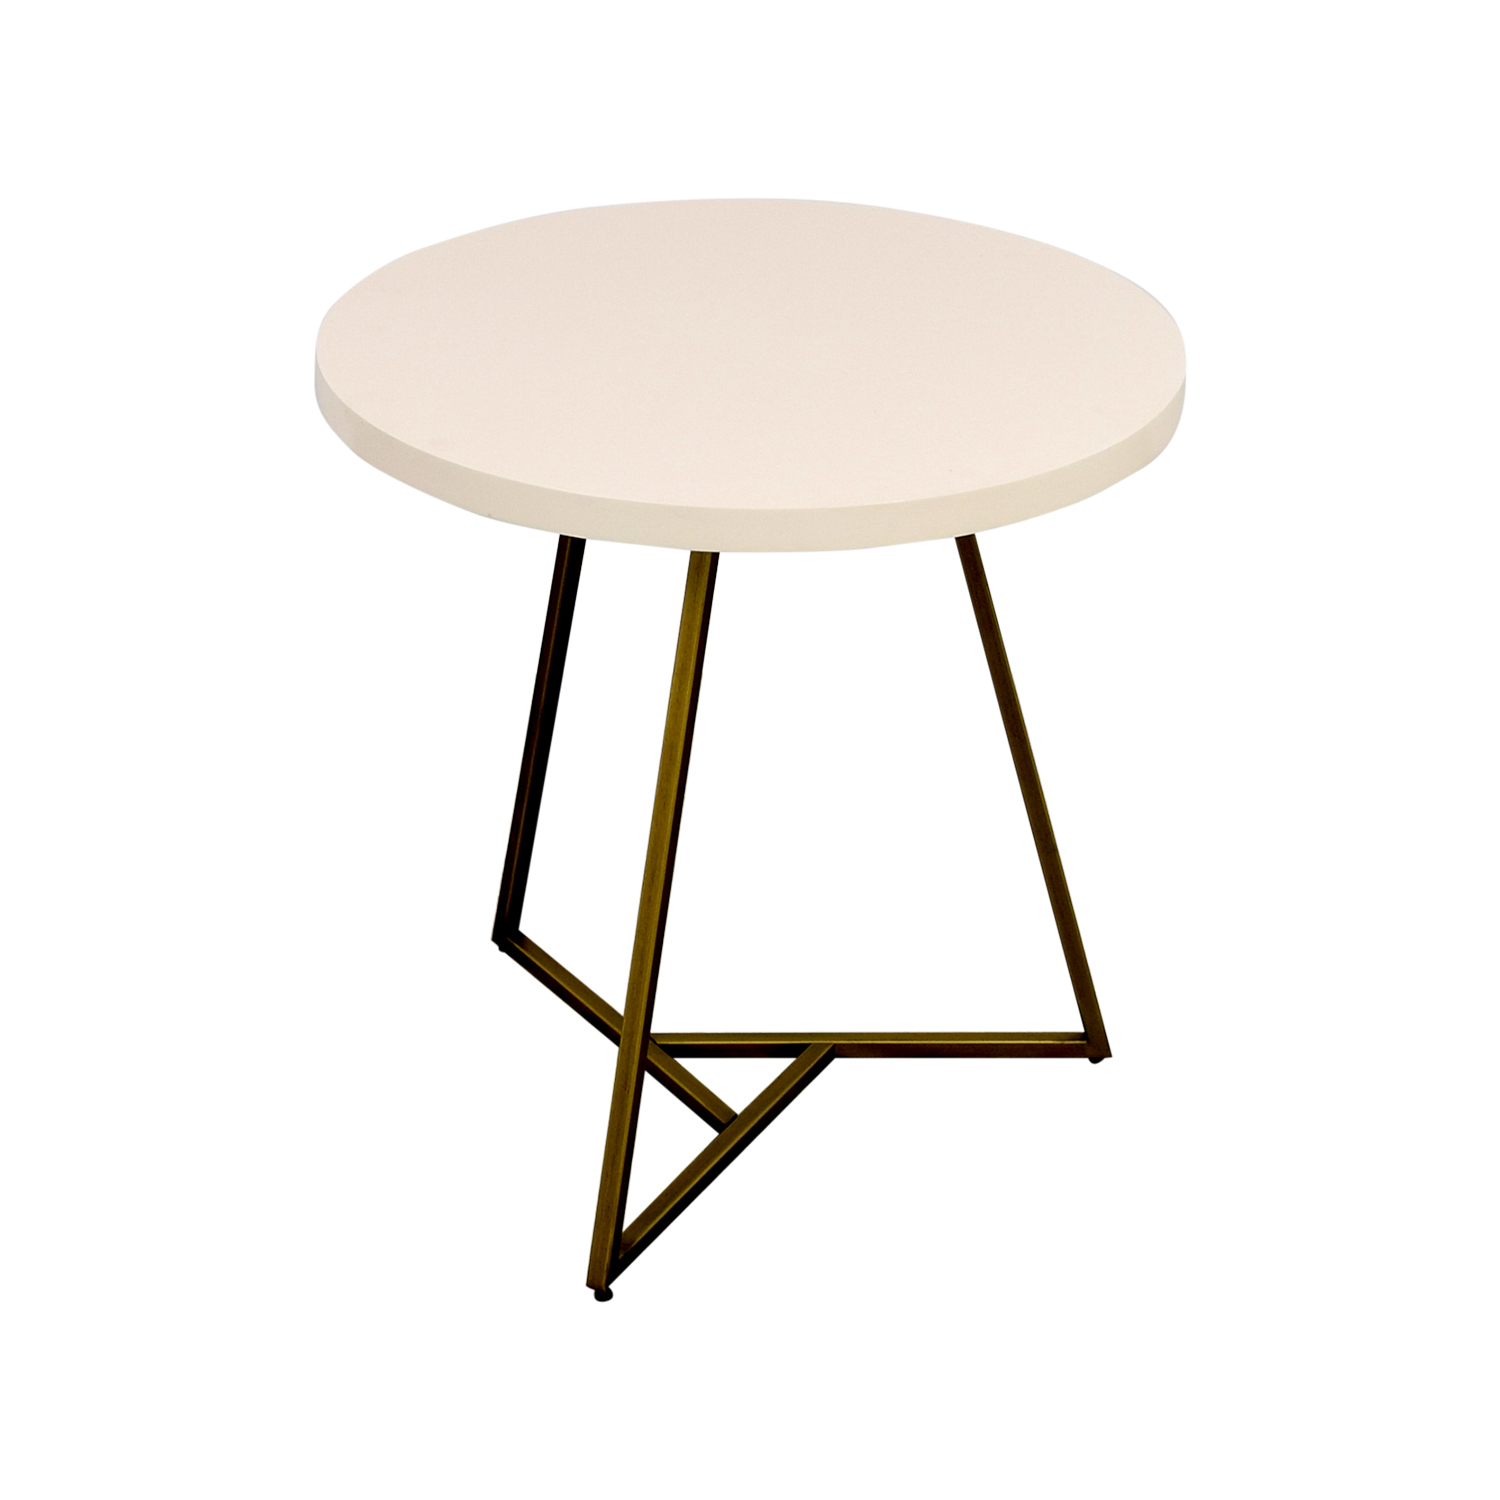 West Elm West Elm White Lacquer Top Cafe Table on sale